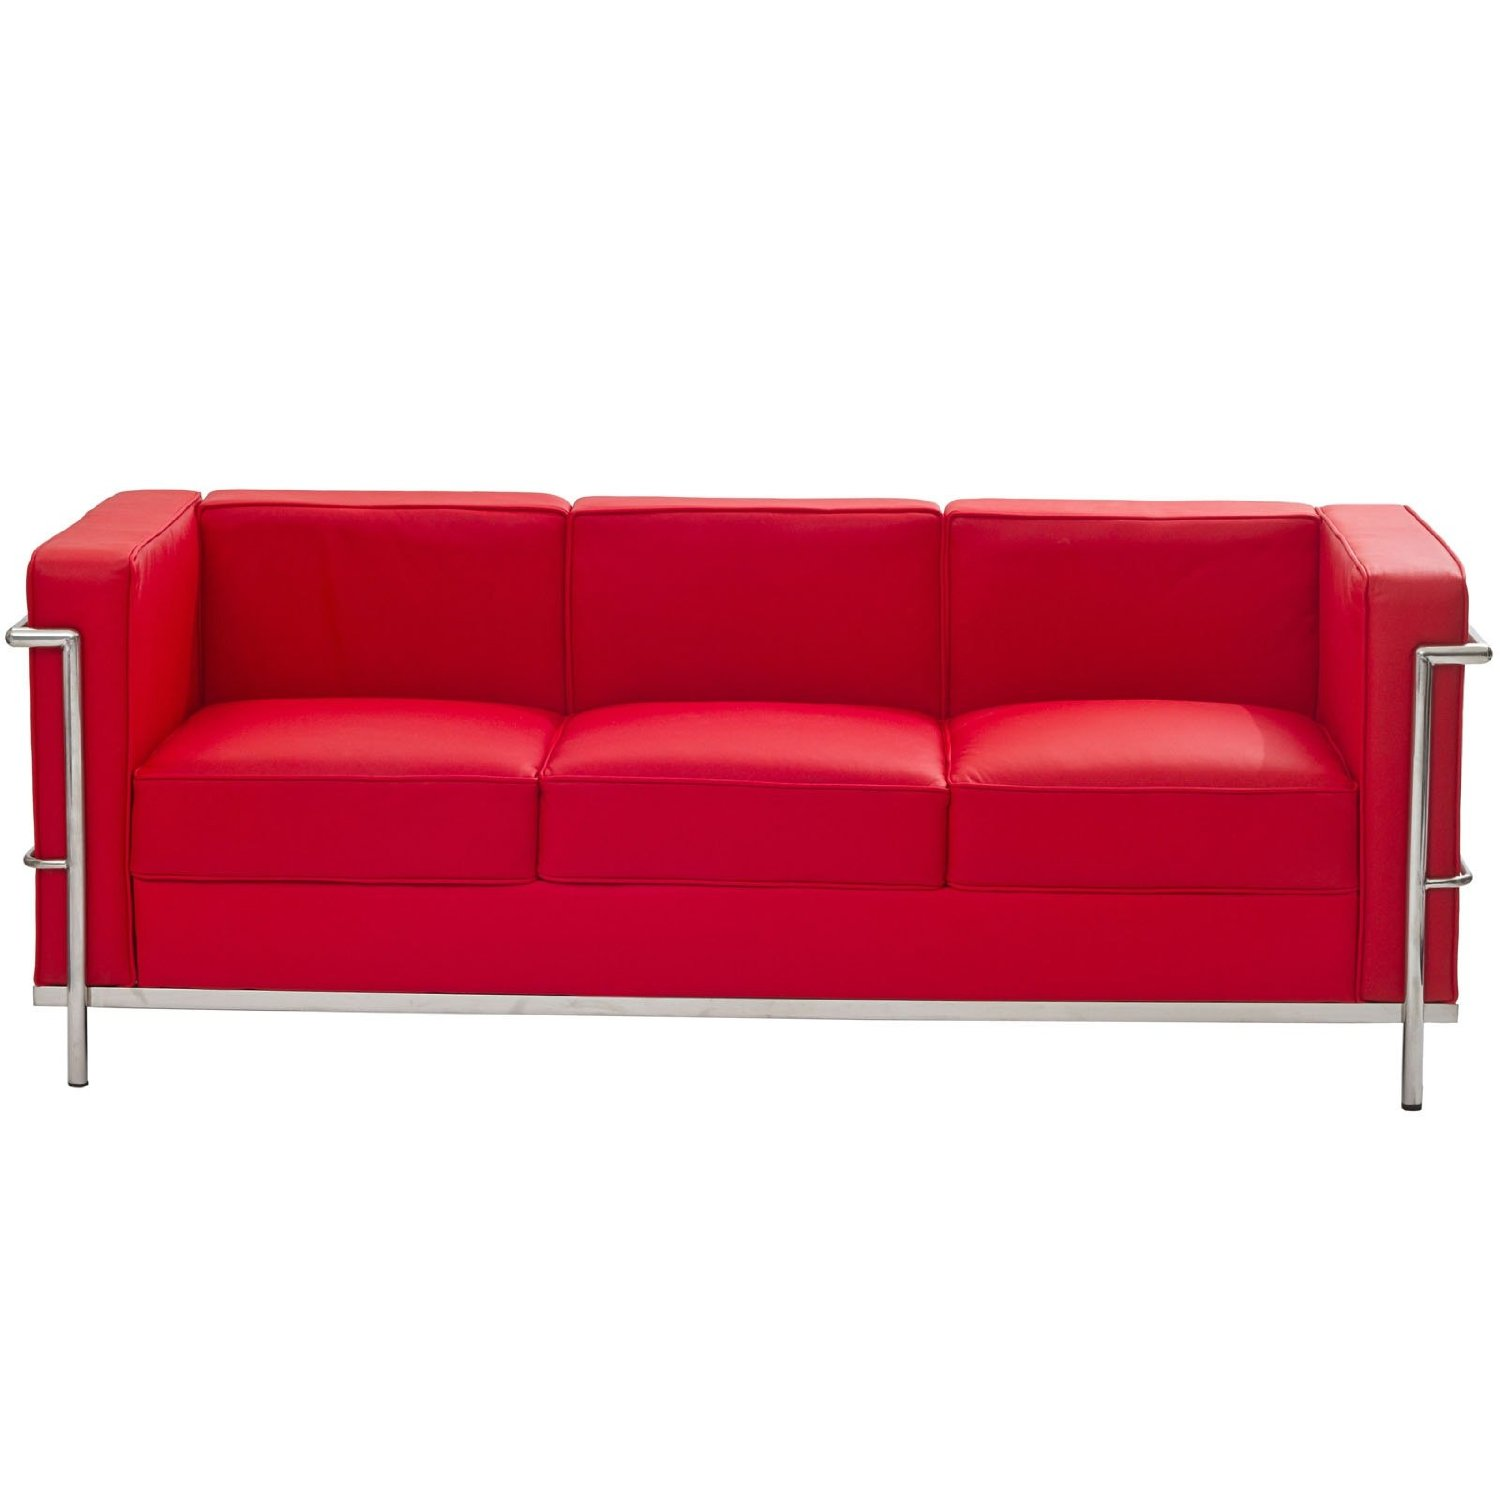 Red leather sofa modern